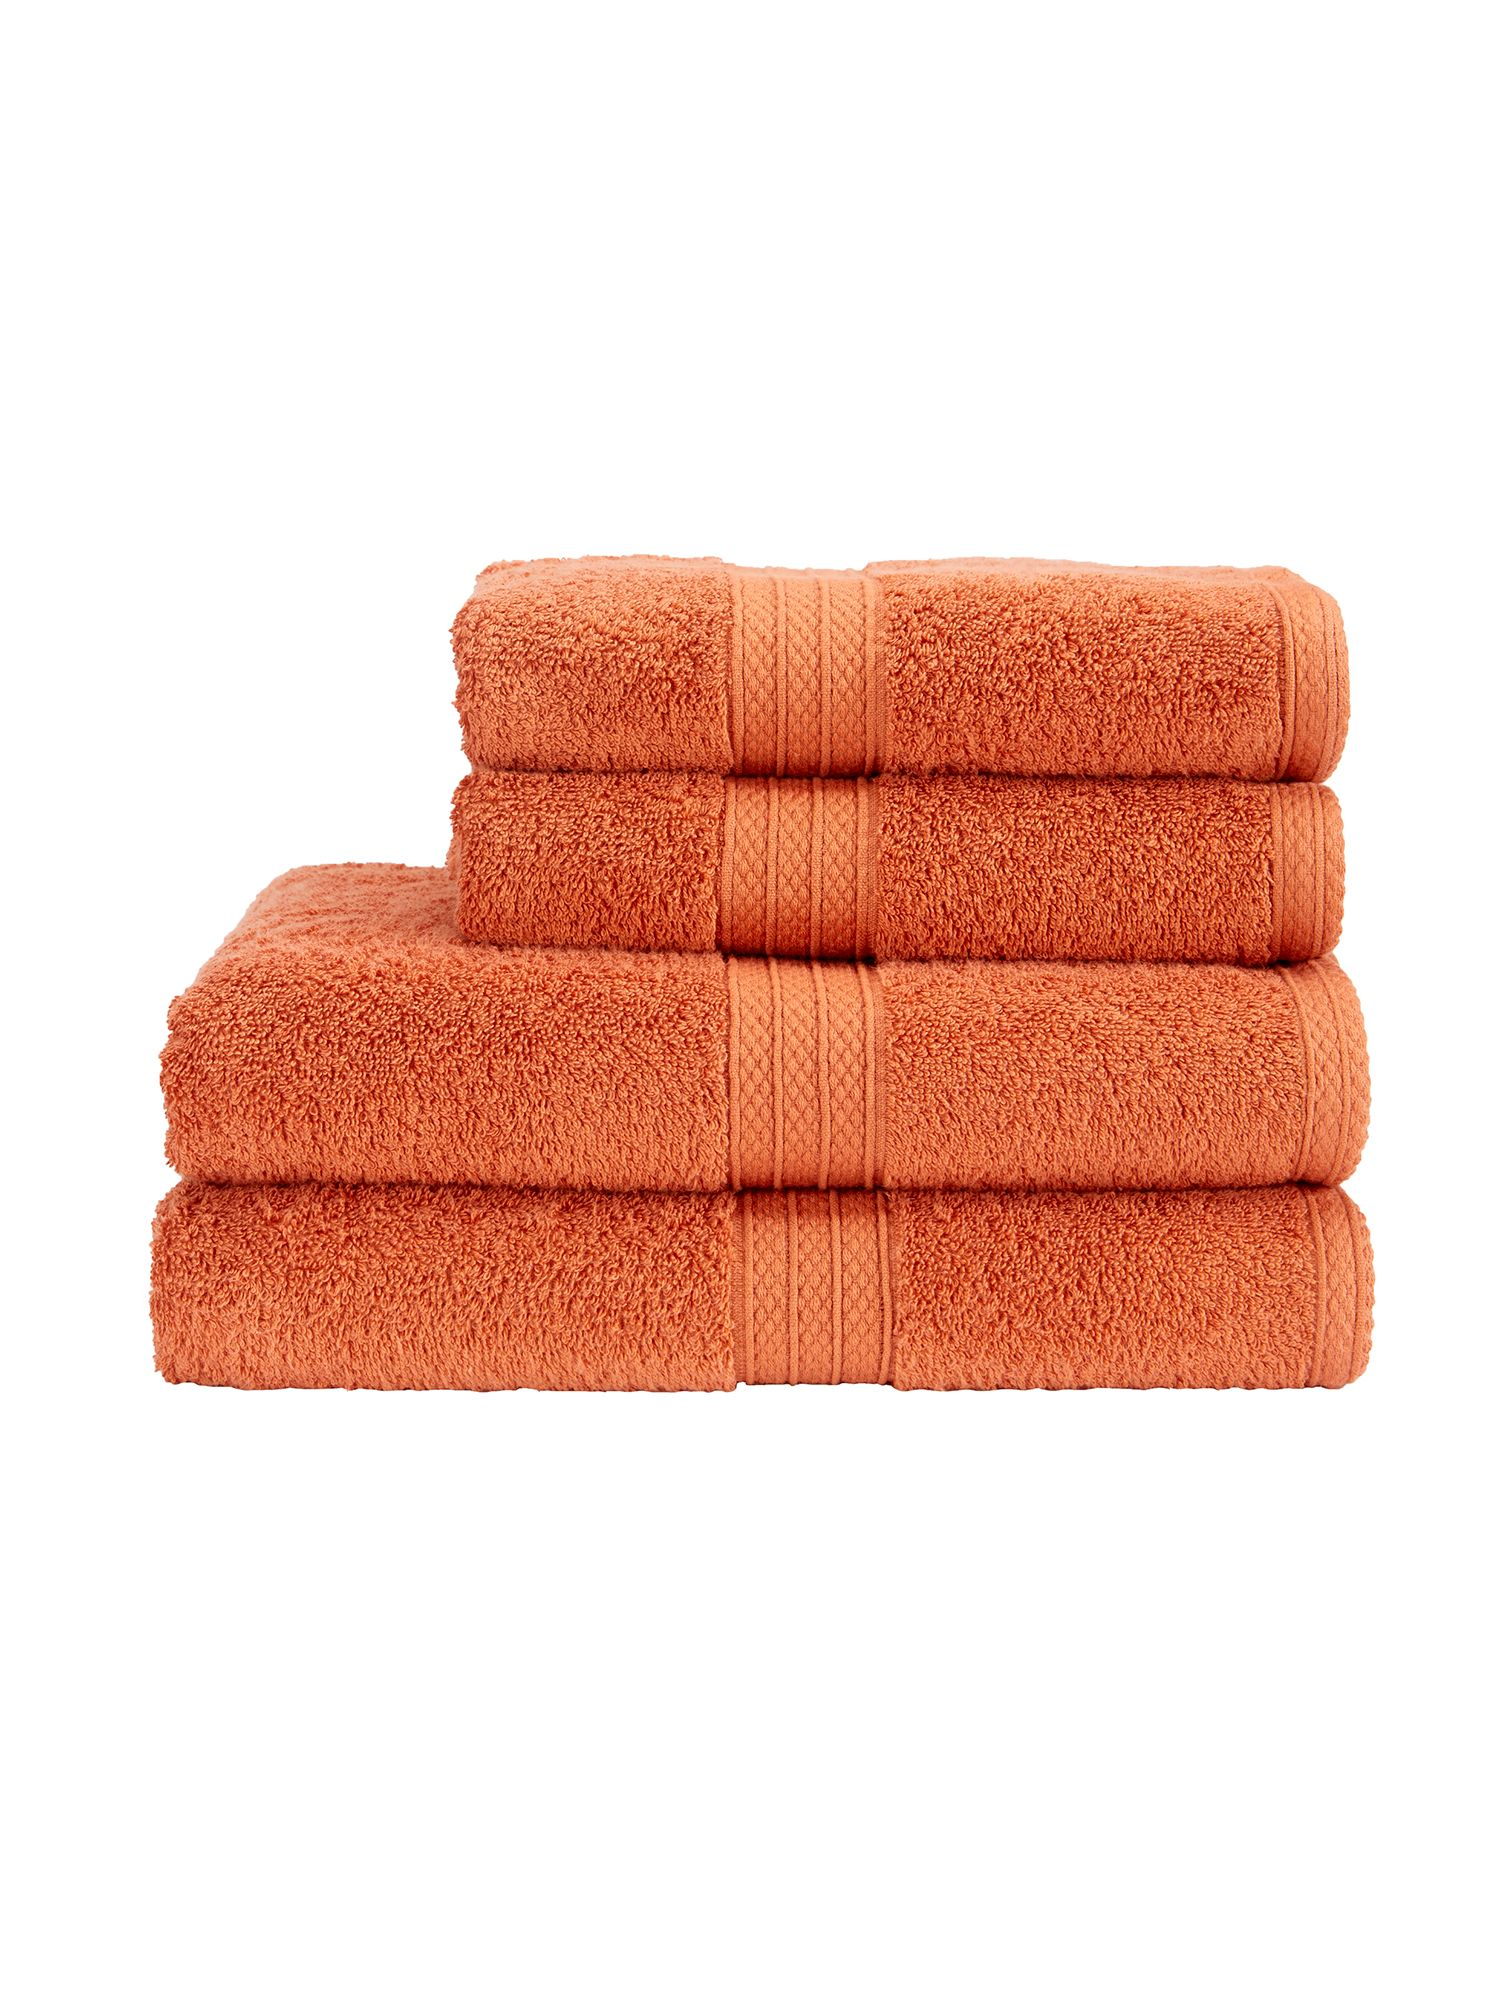 Georgia cinnamon towels